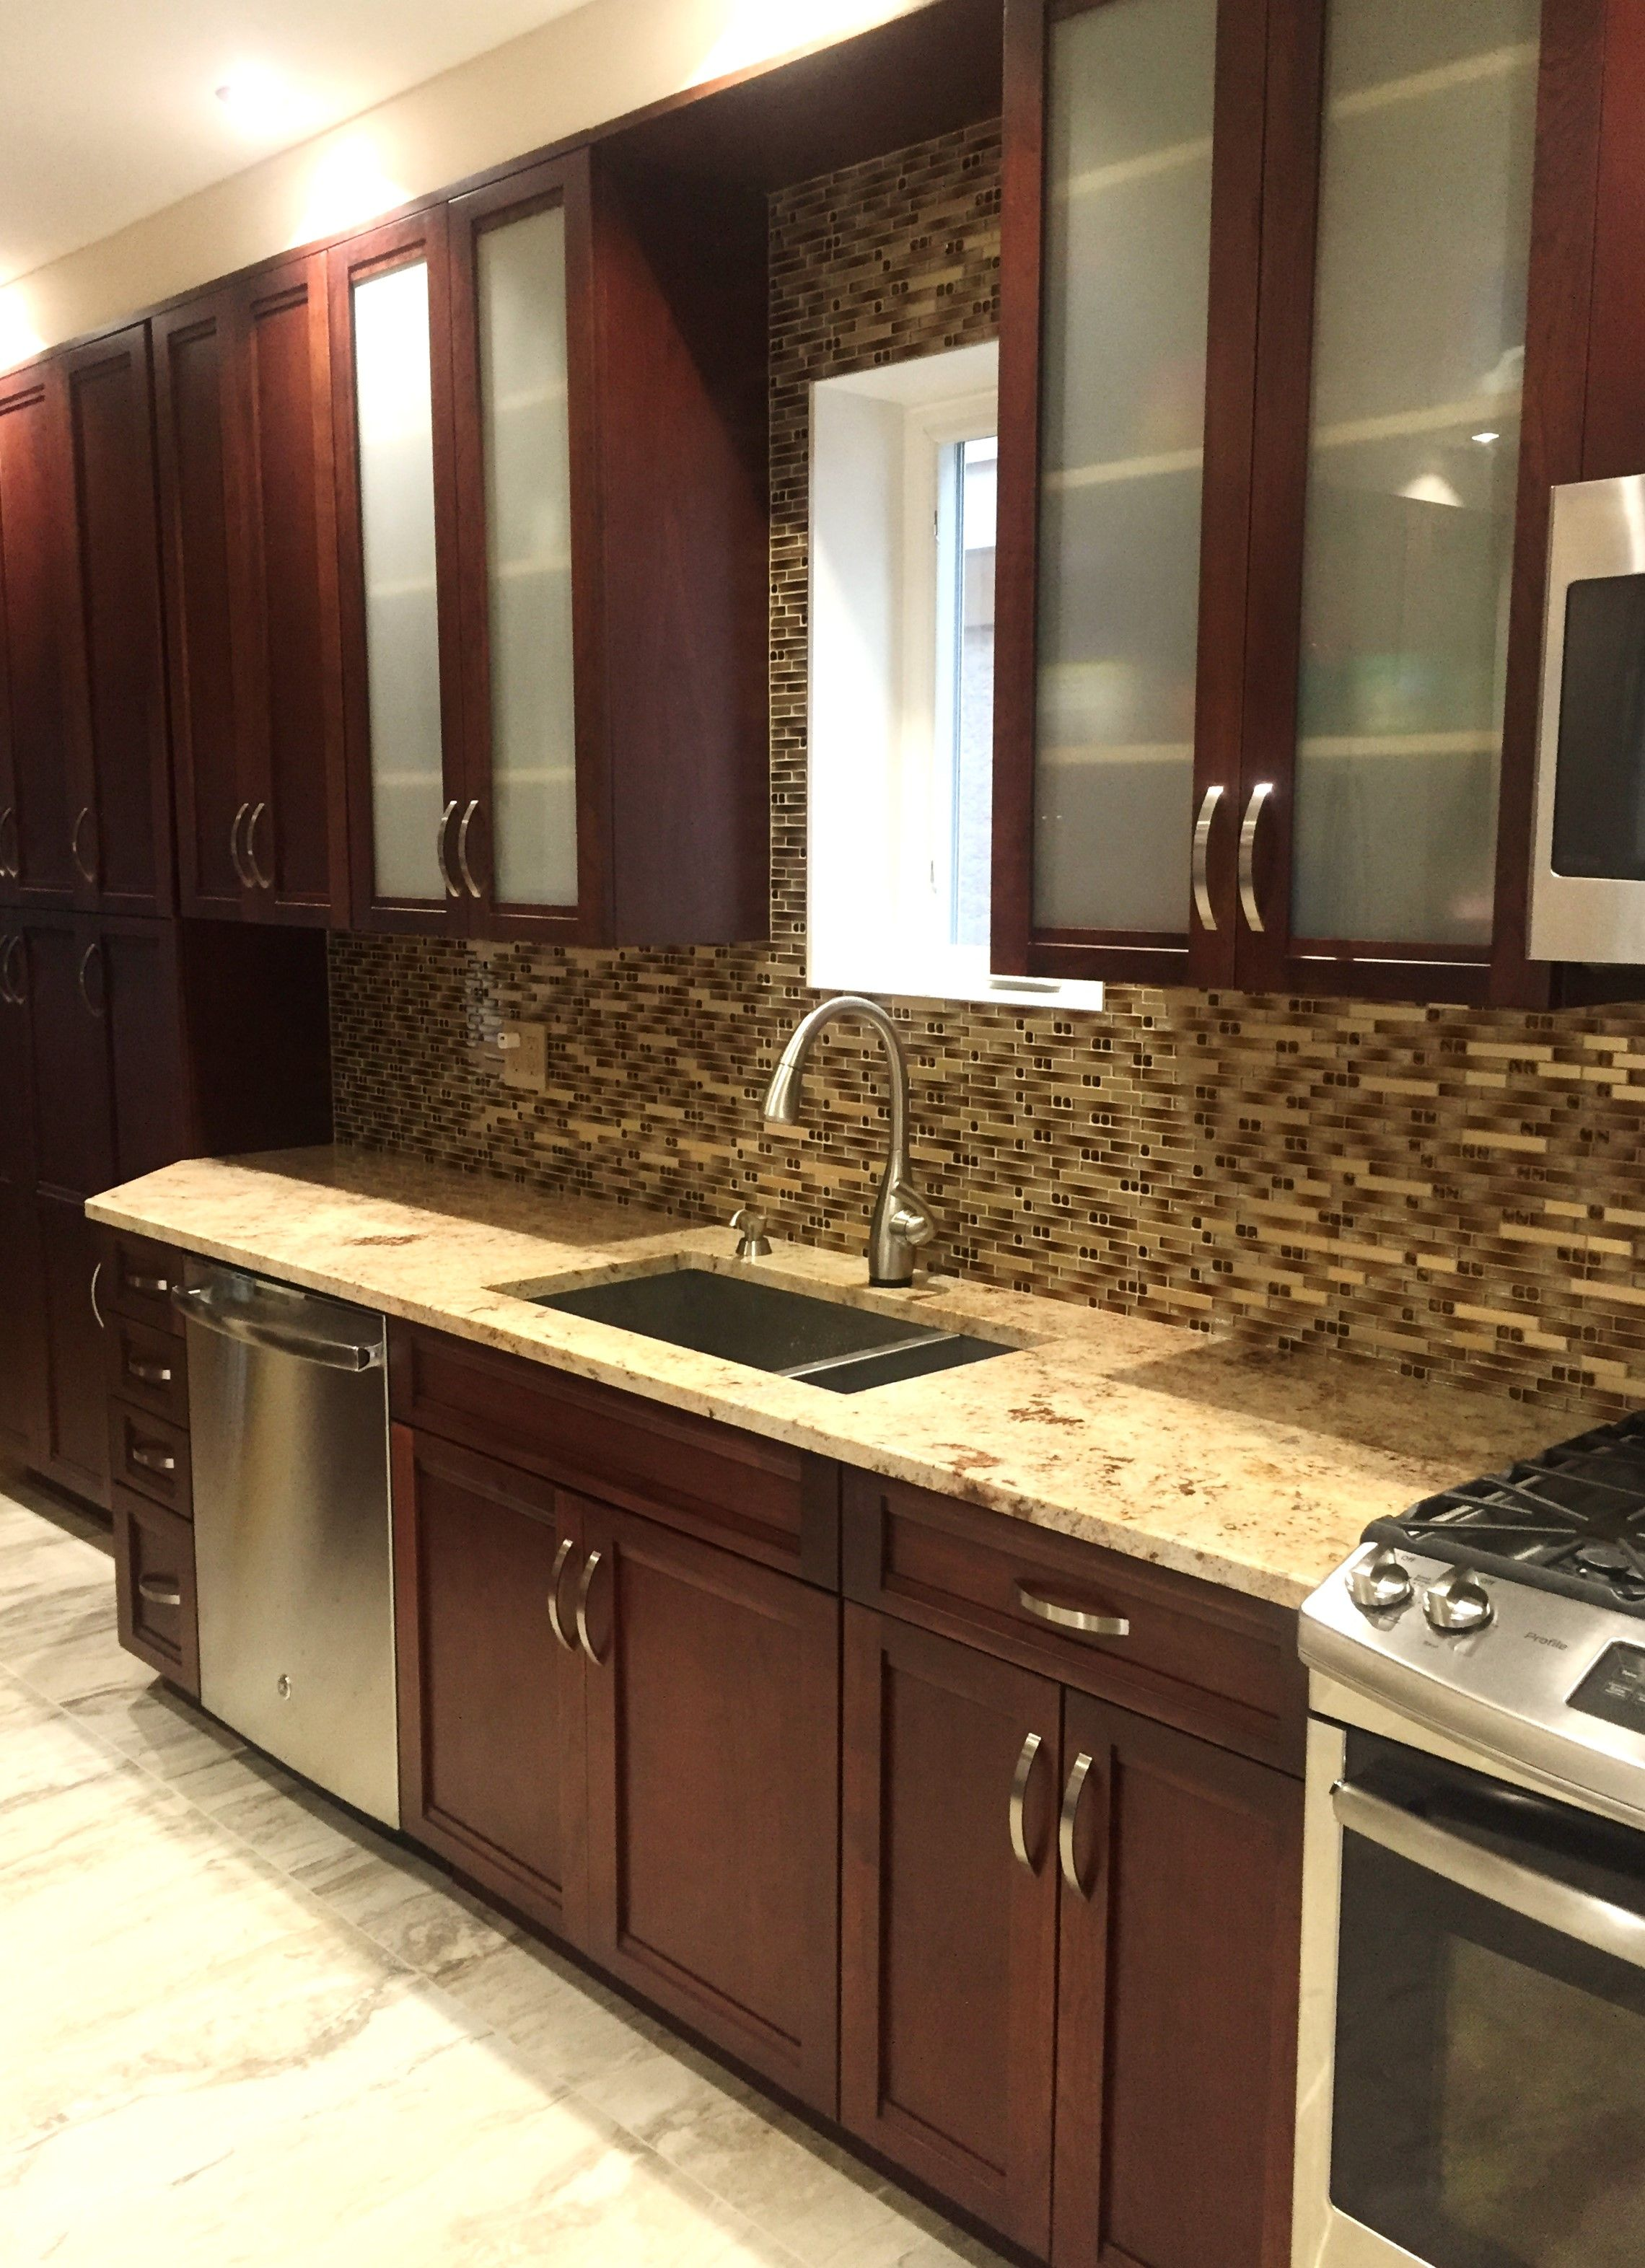 New Shaker Style Door From Hanssemour Designers Will Keep You Up Custom Modern Kitchen Cabinets Nyc Design Ideas